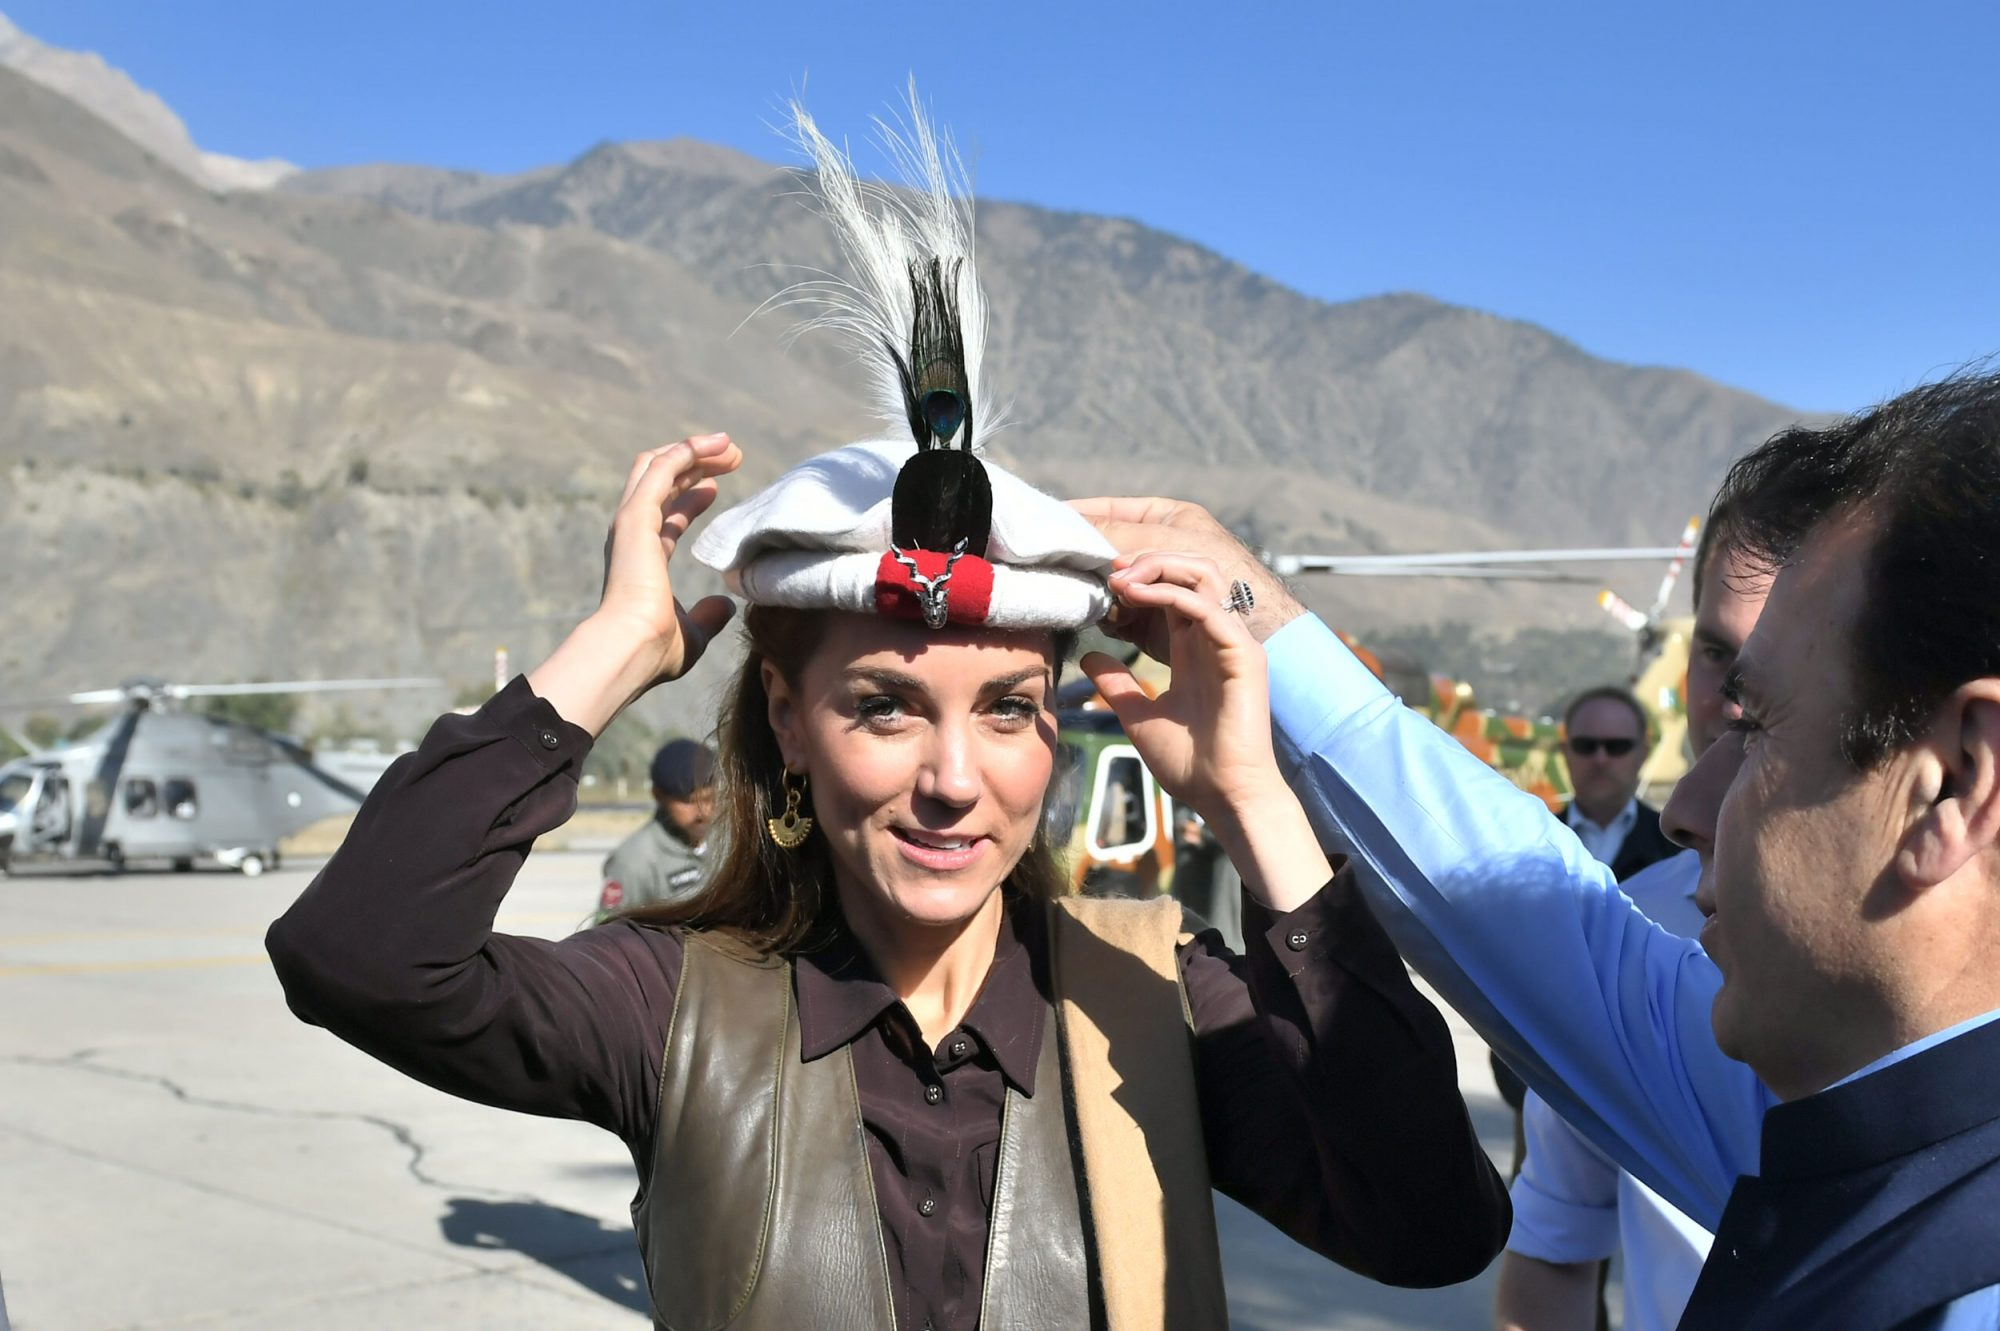 Prince William and Kate Middleton arrived at Chitral